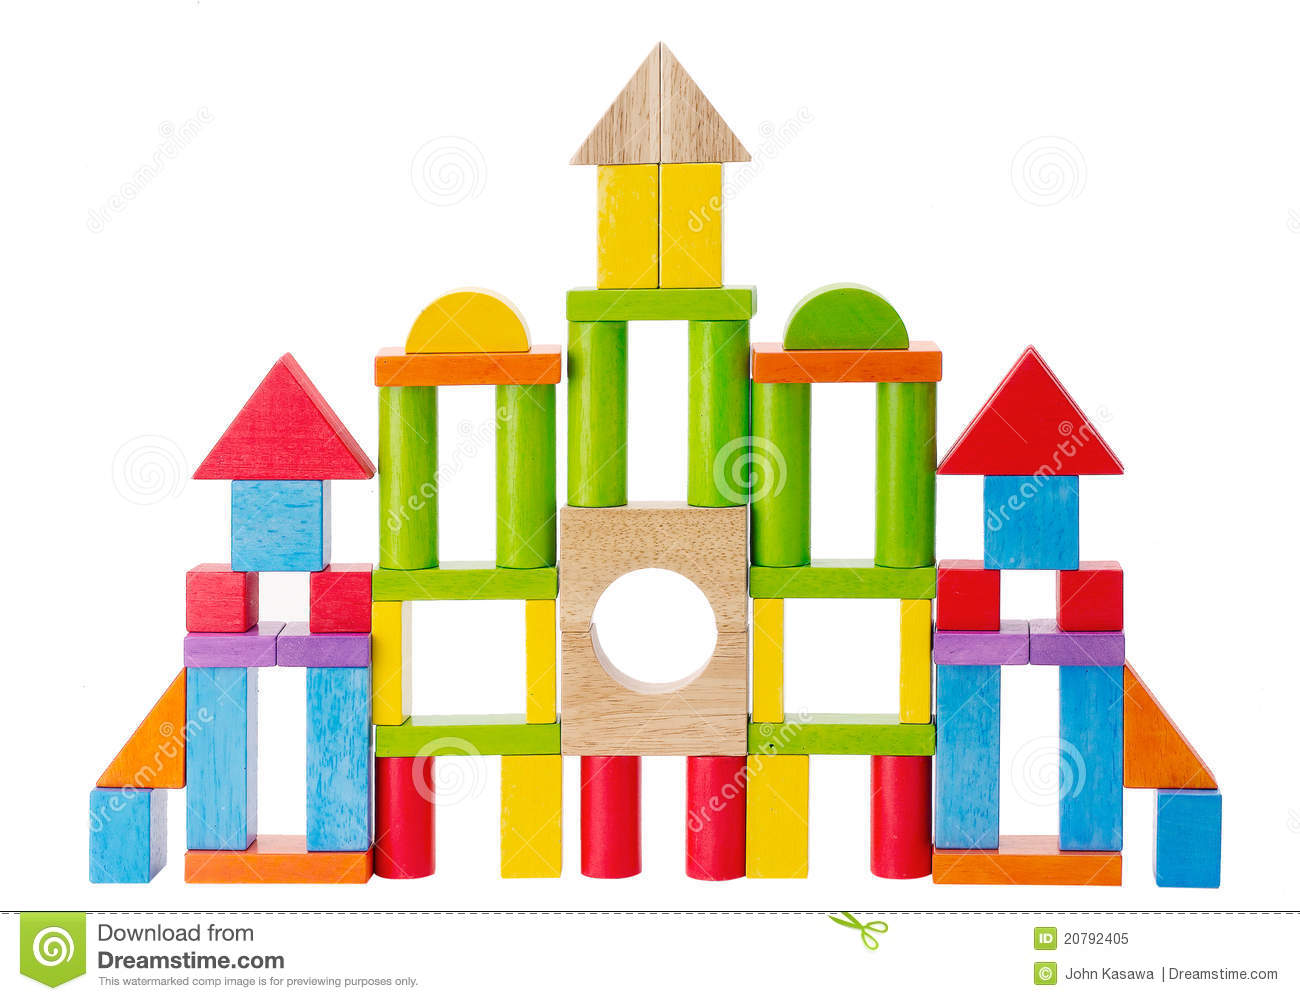 ... there imagine on wooden toy blocks to build the castle or city's wall